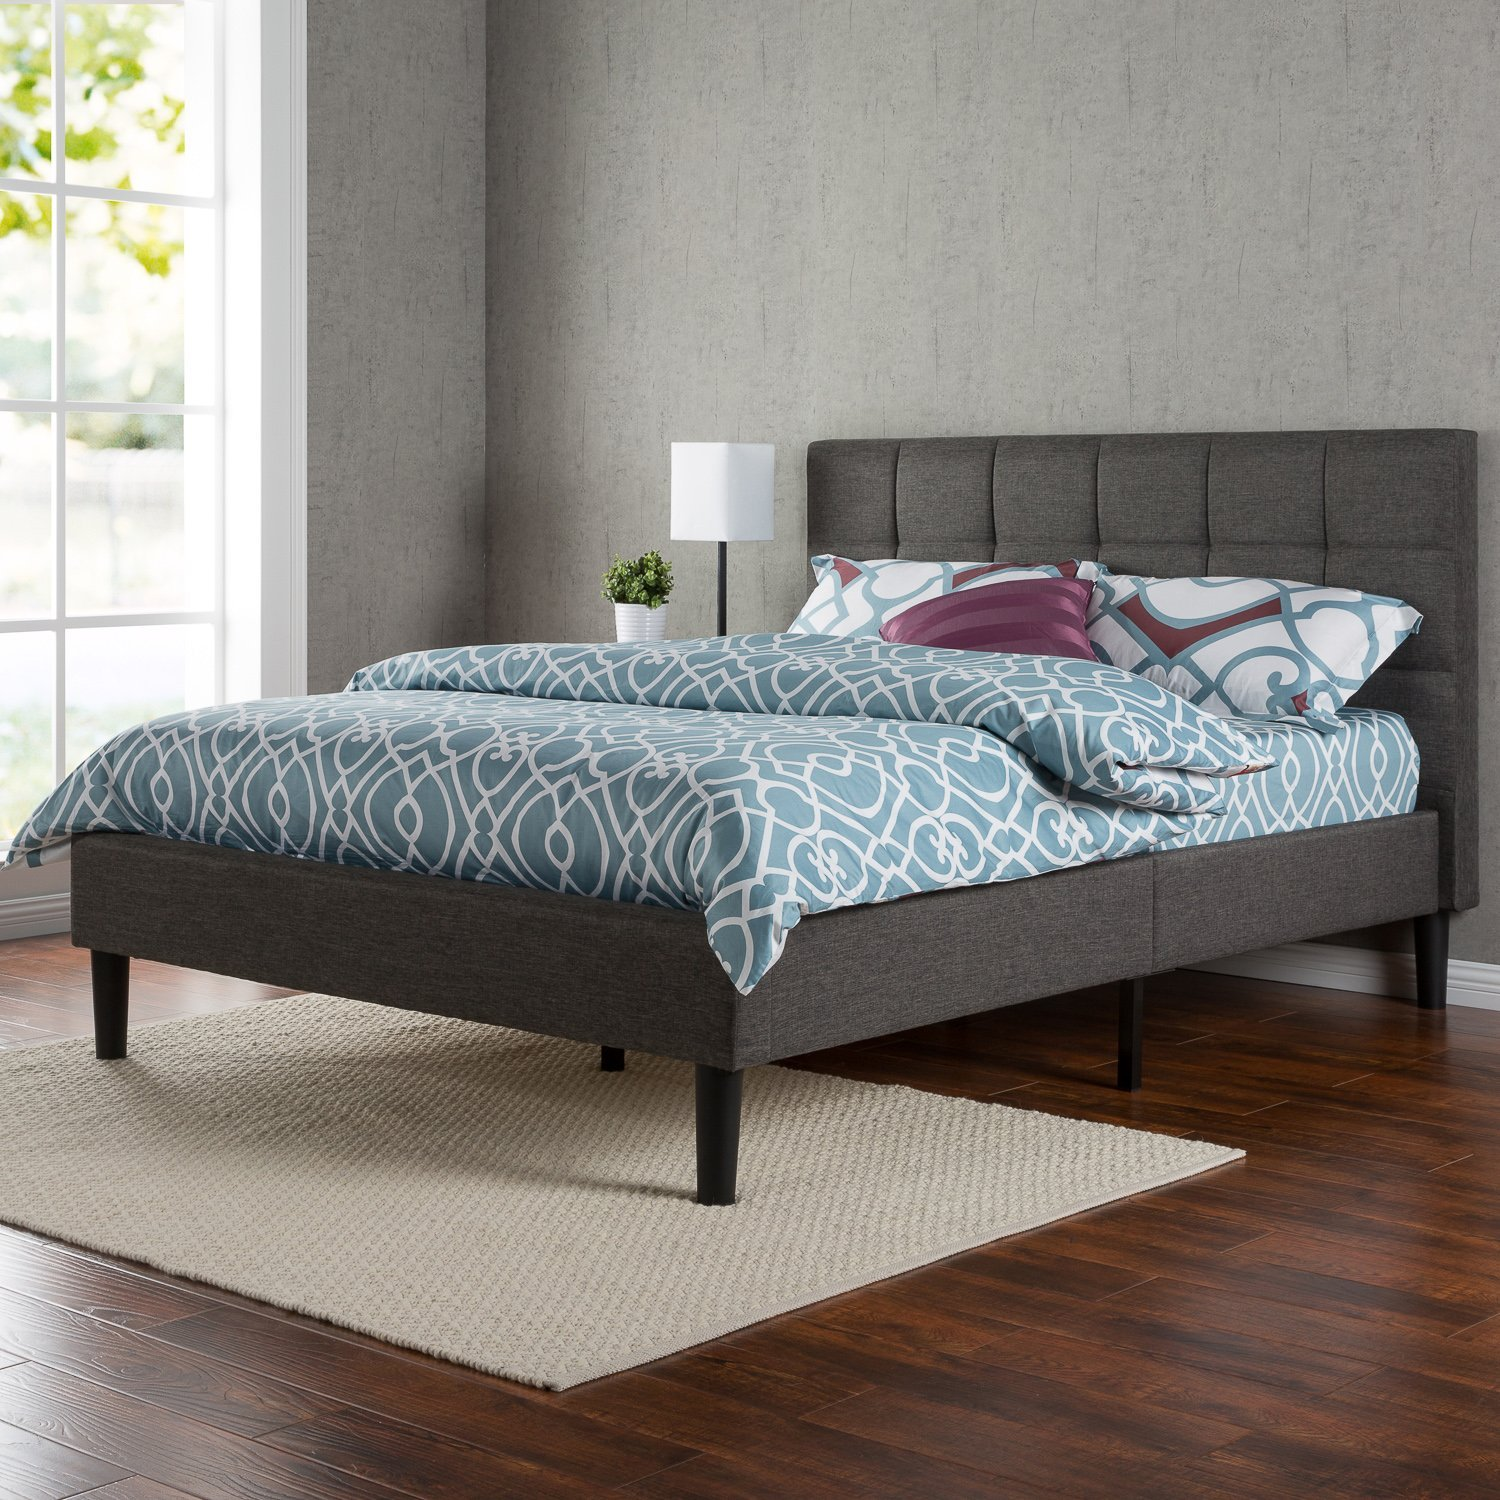 Zinus Upholstered Square Stitched Platform Bed With Headboard And Wooden  Slats, Multiple Sizes